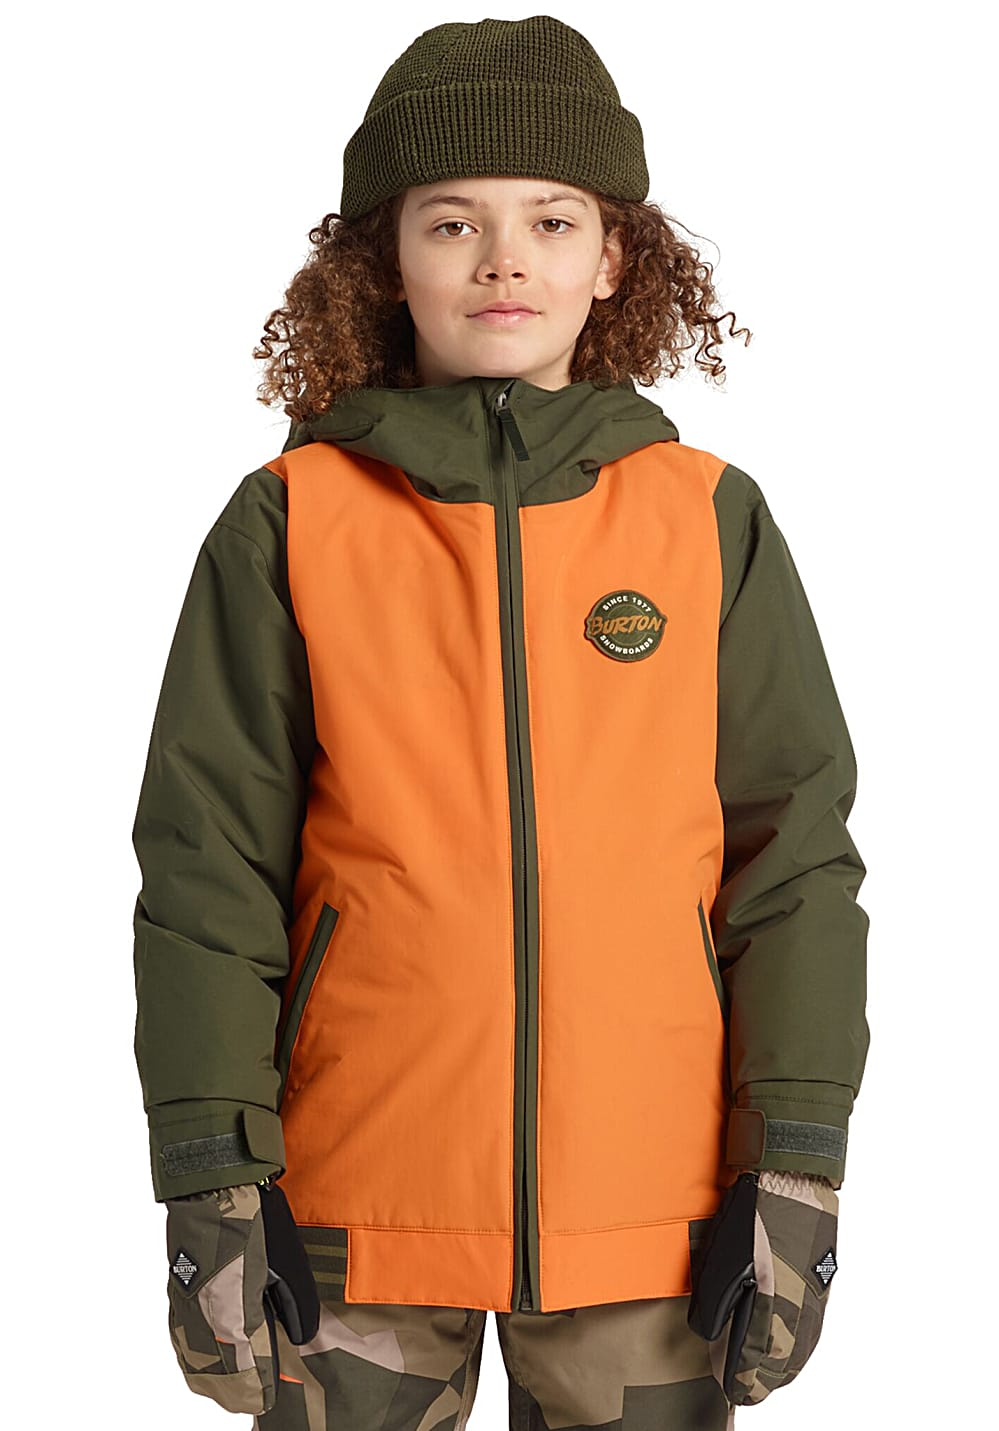 Boysregenwinter - Burton Game Day Snowboardjacke für Jungs Orange - Onlineshop Planet Sports